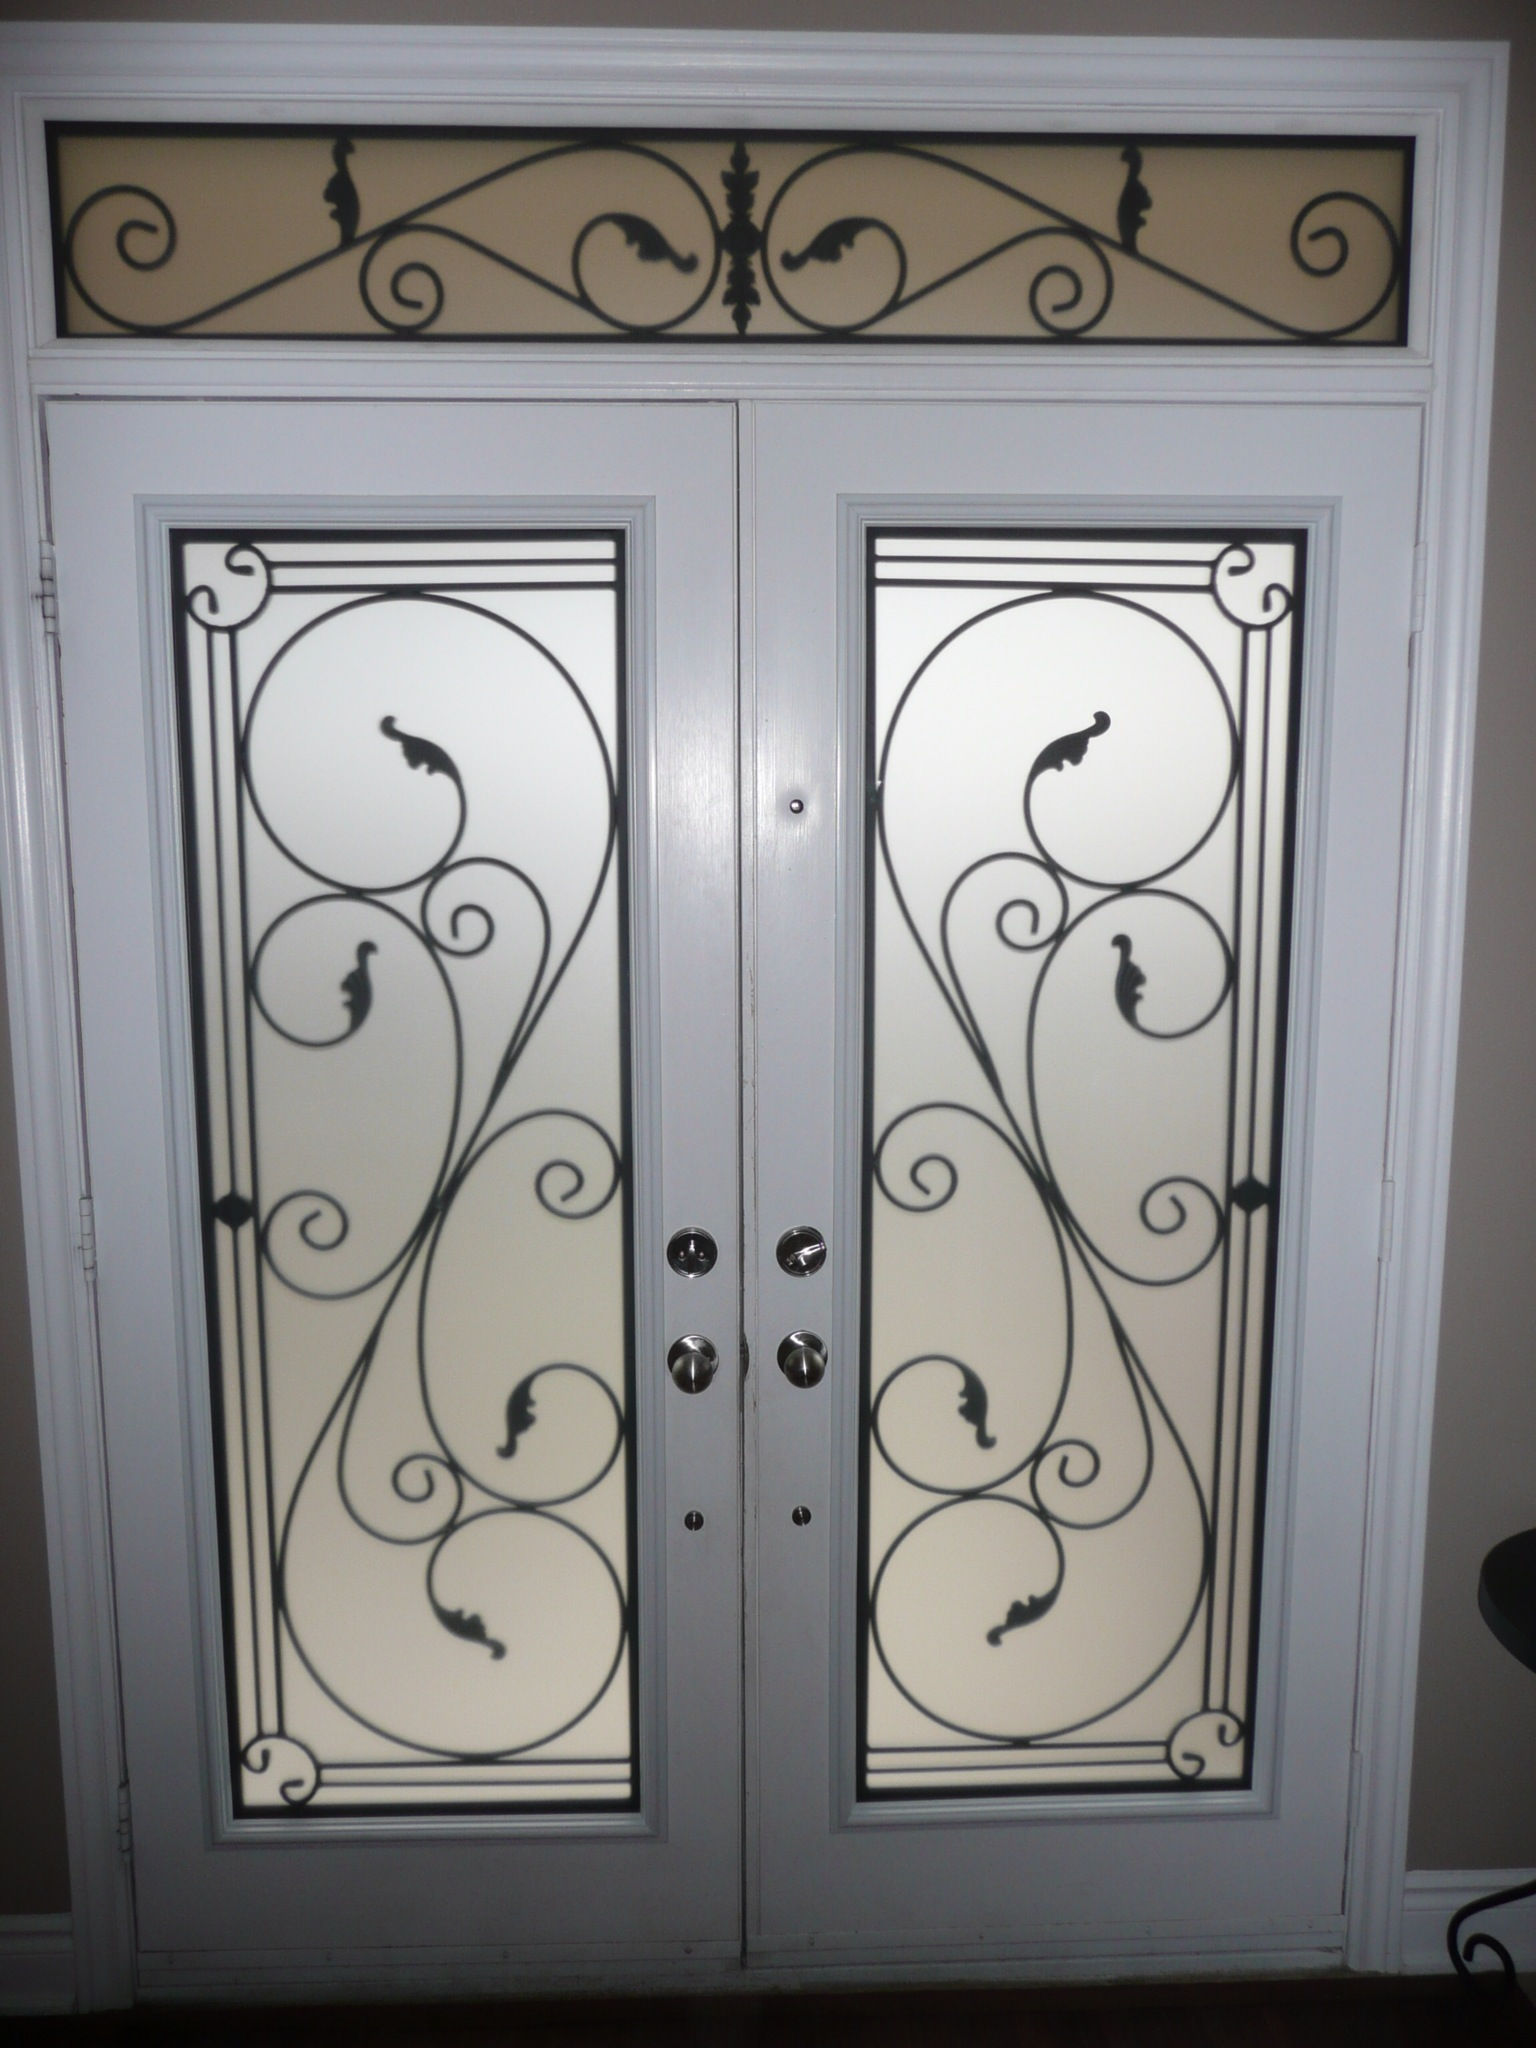 Flamingo-Bay-Wrought-Iron-Glass-Door-Inserts-Barrie-Ontario